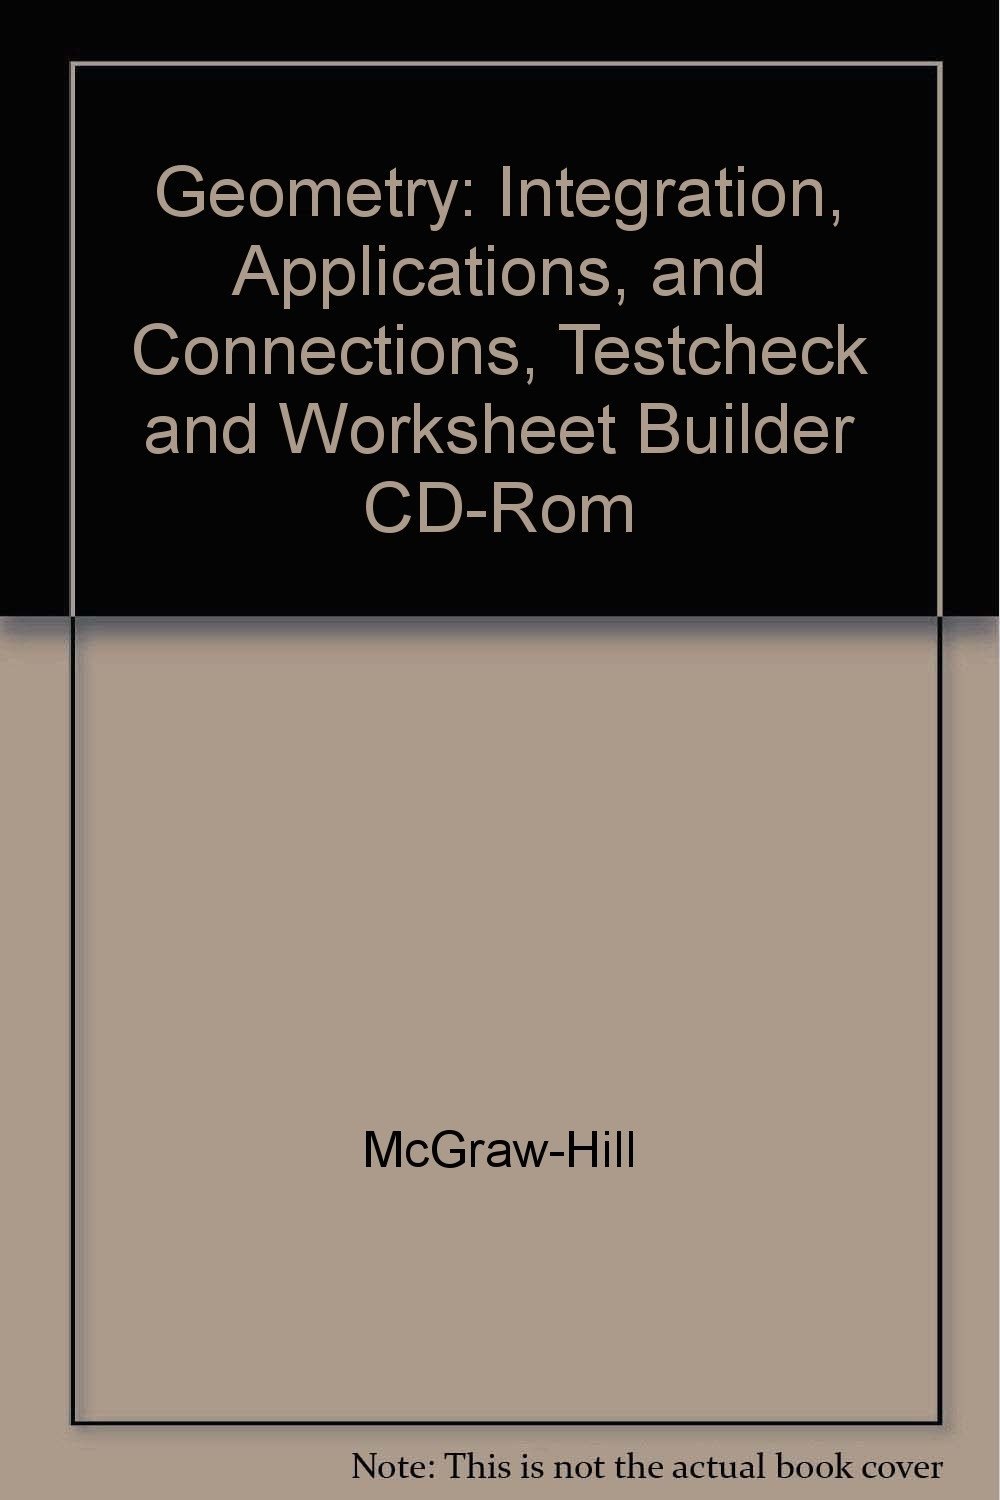 Geometry Integration Applications and Connections Testcheck – Worksheet Builder